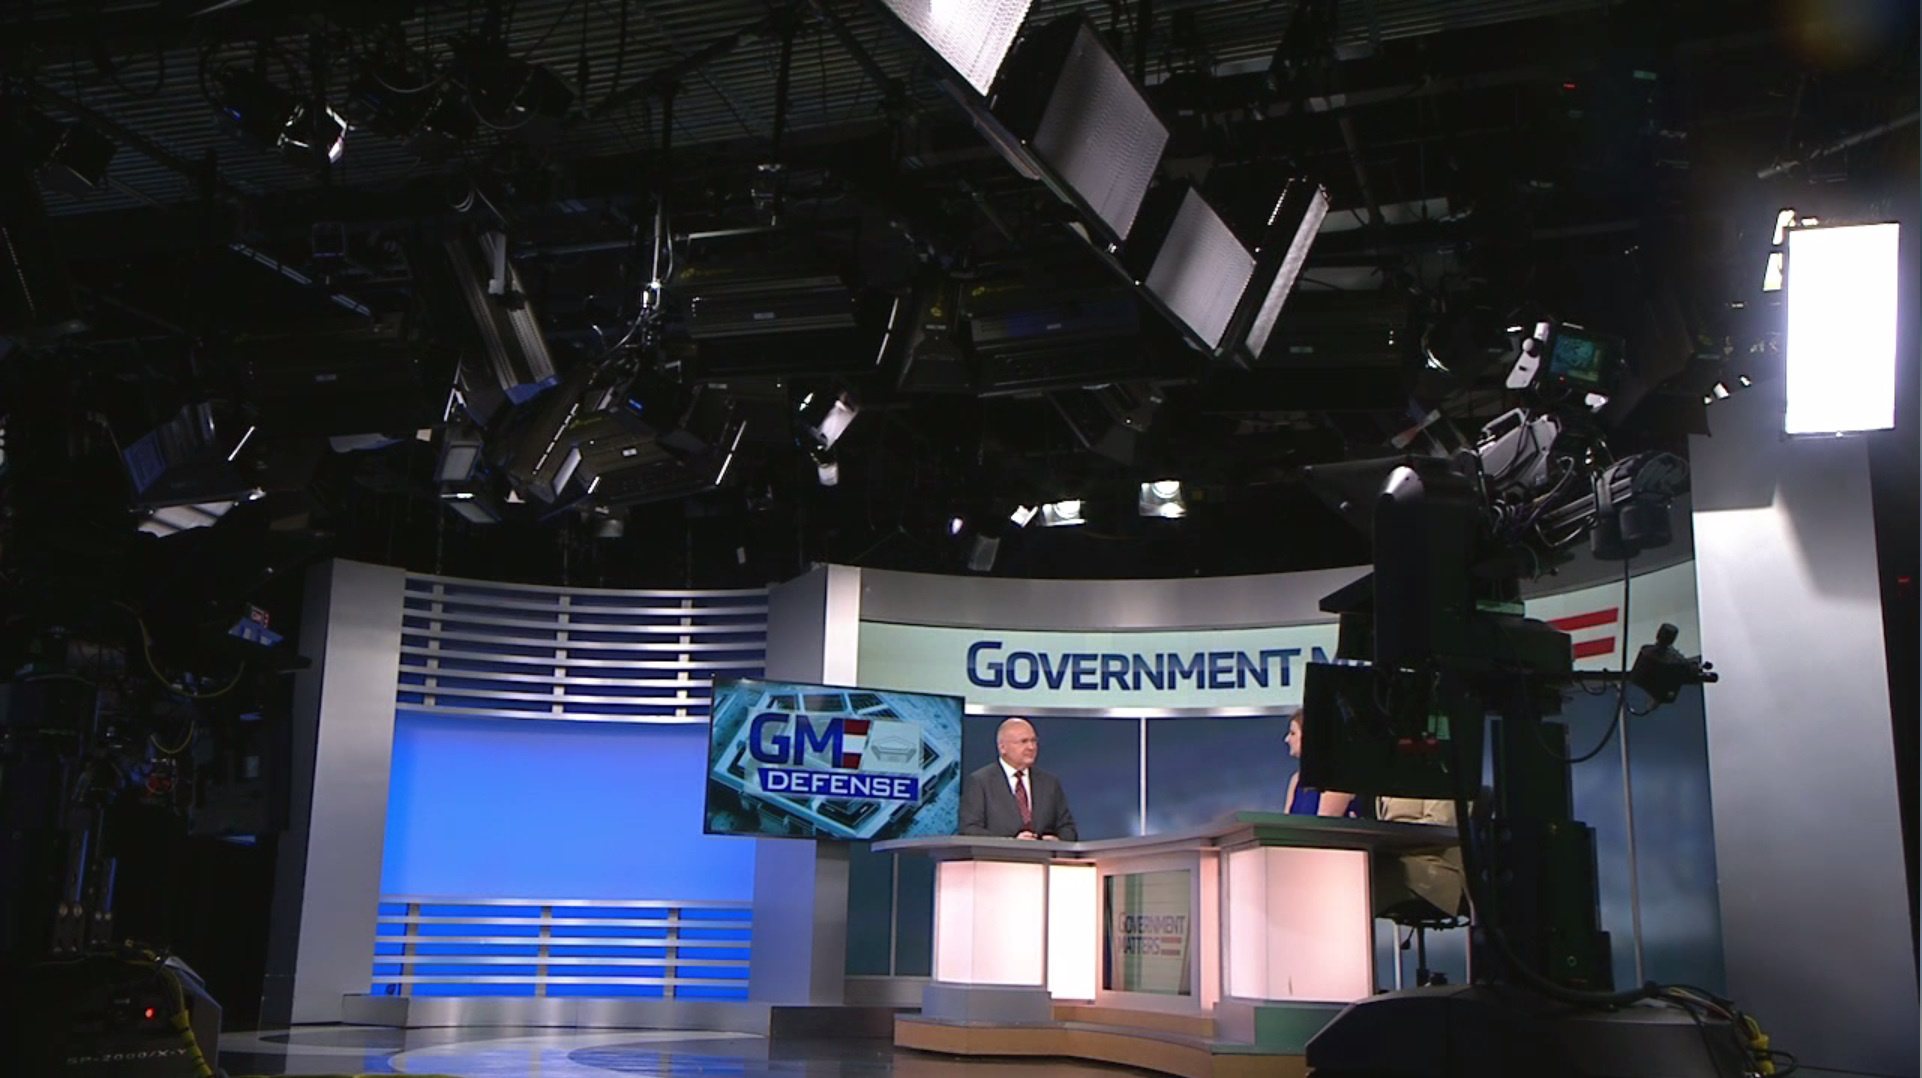 Government Matters Defense (Full Show) – June 6, 2018